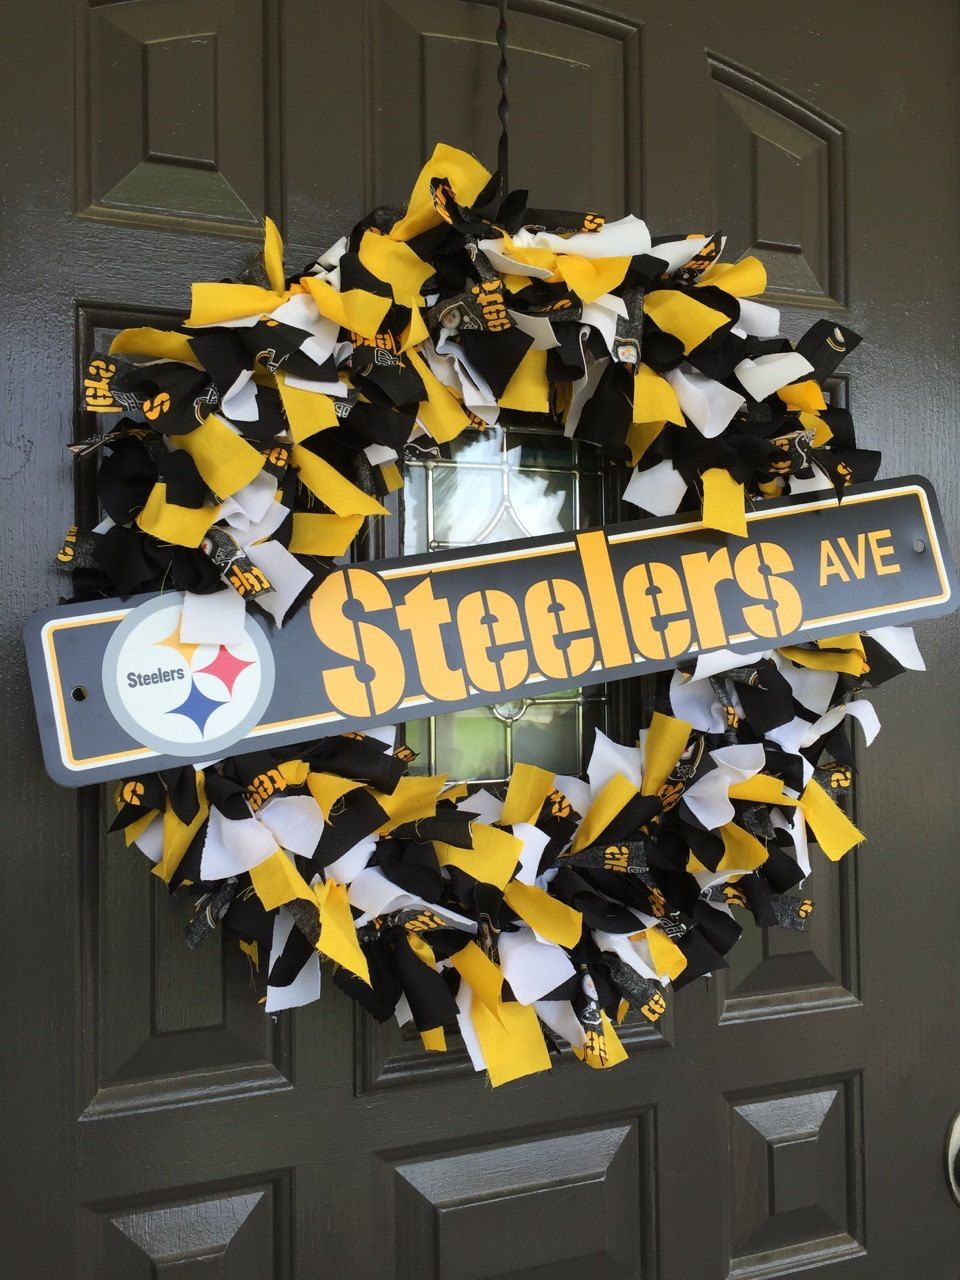 pittsburgh steelers nfl fabric wreath with street sign by on etsy